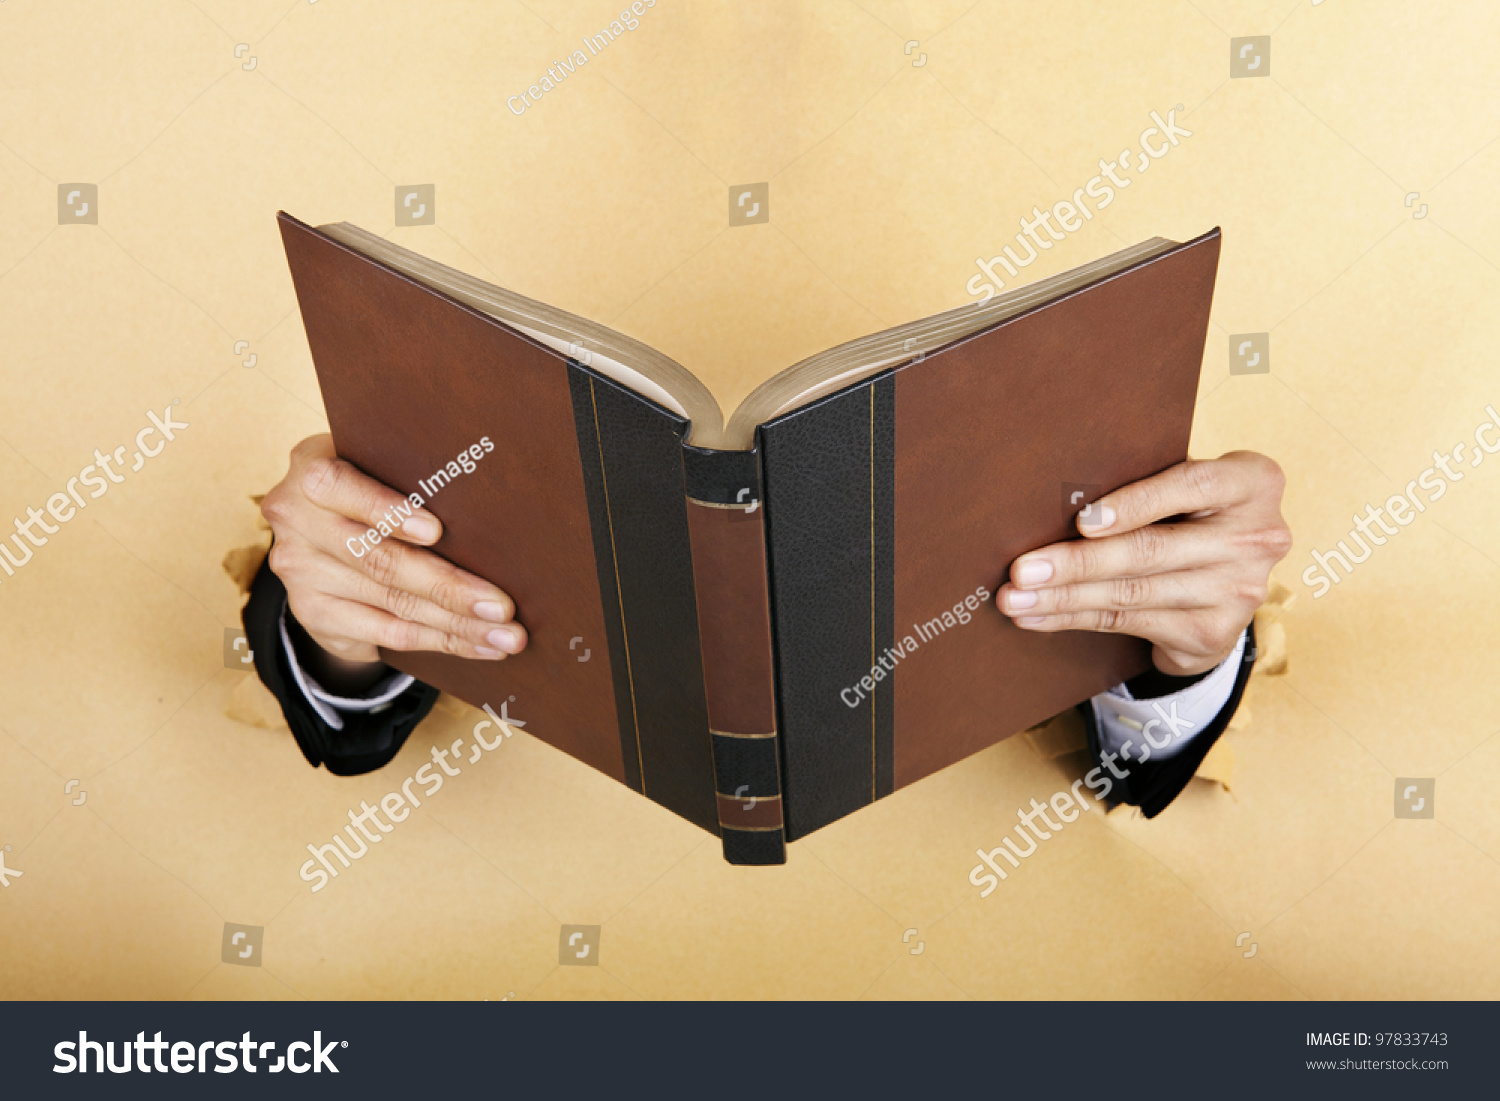 Technology Management Image: Businessman Hand Holding A Book Breaking Through A Paper